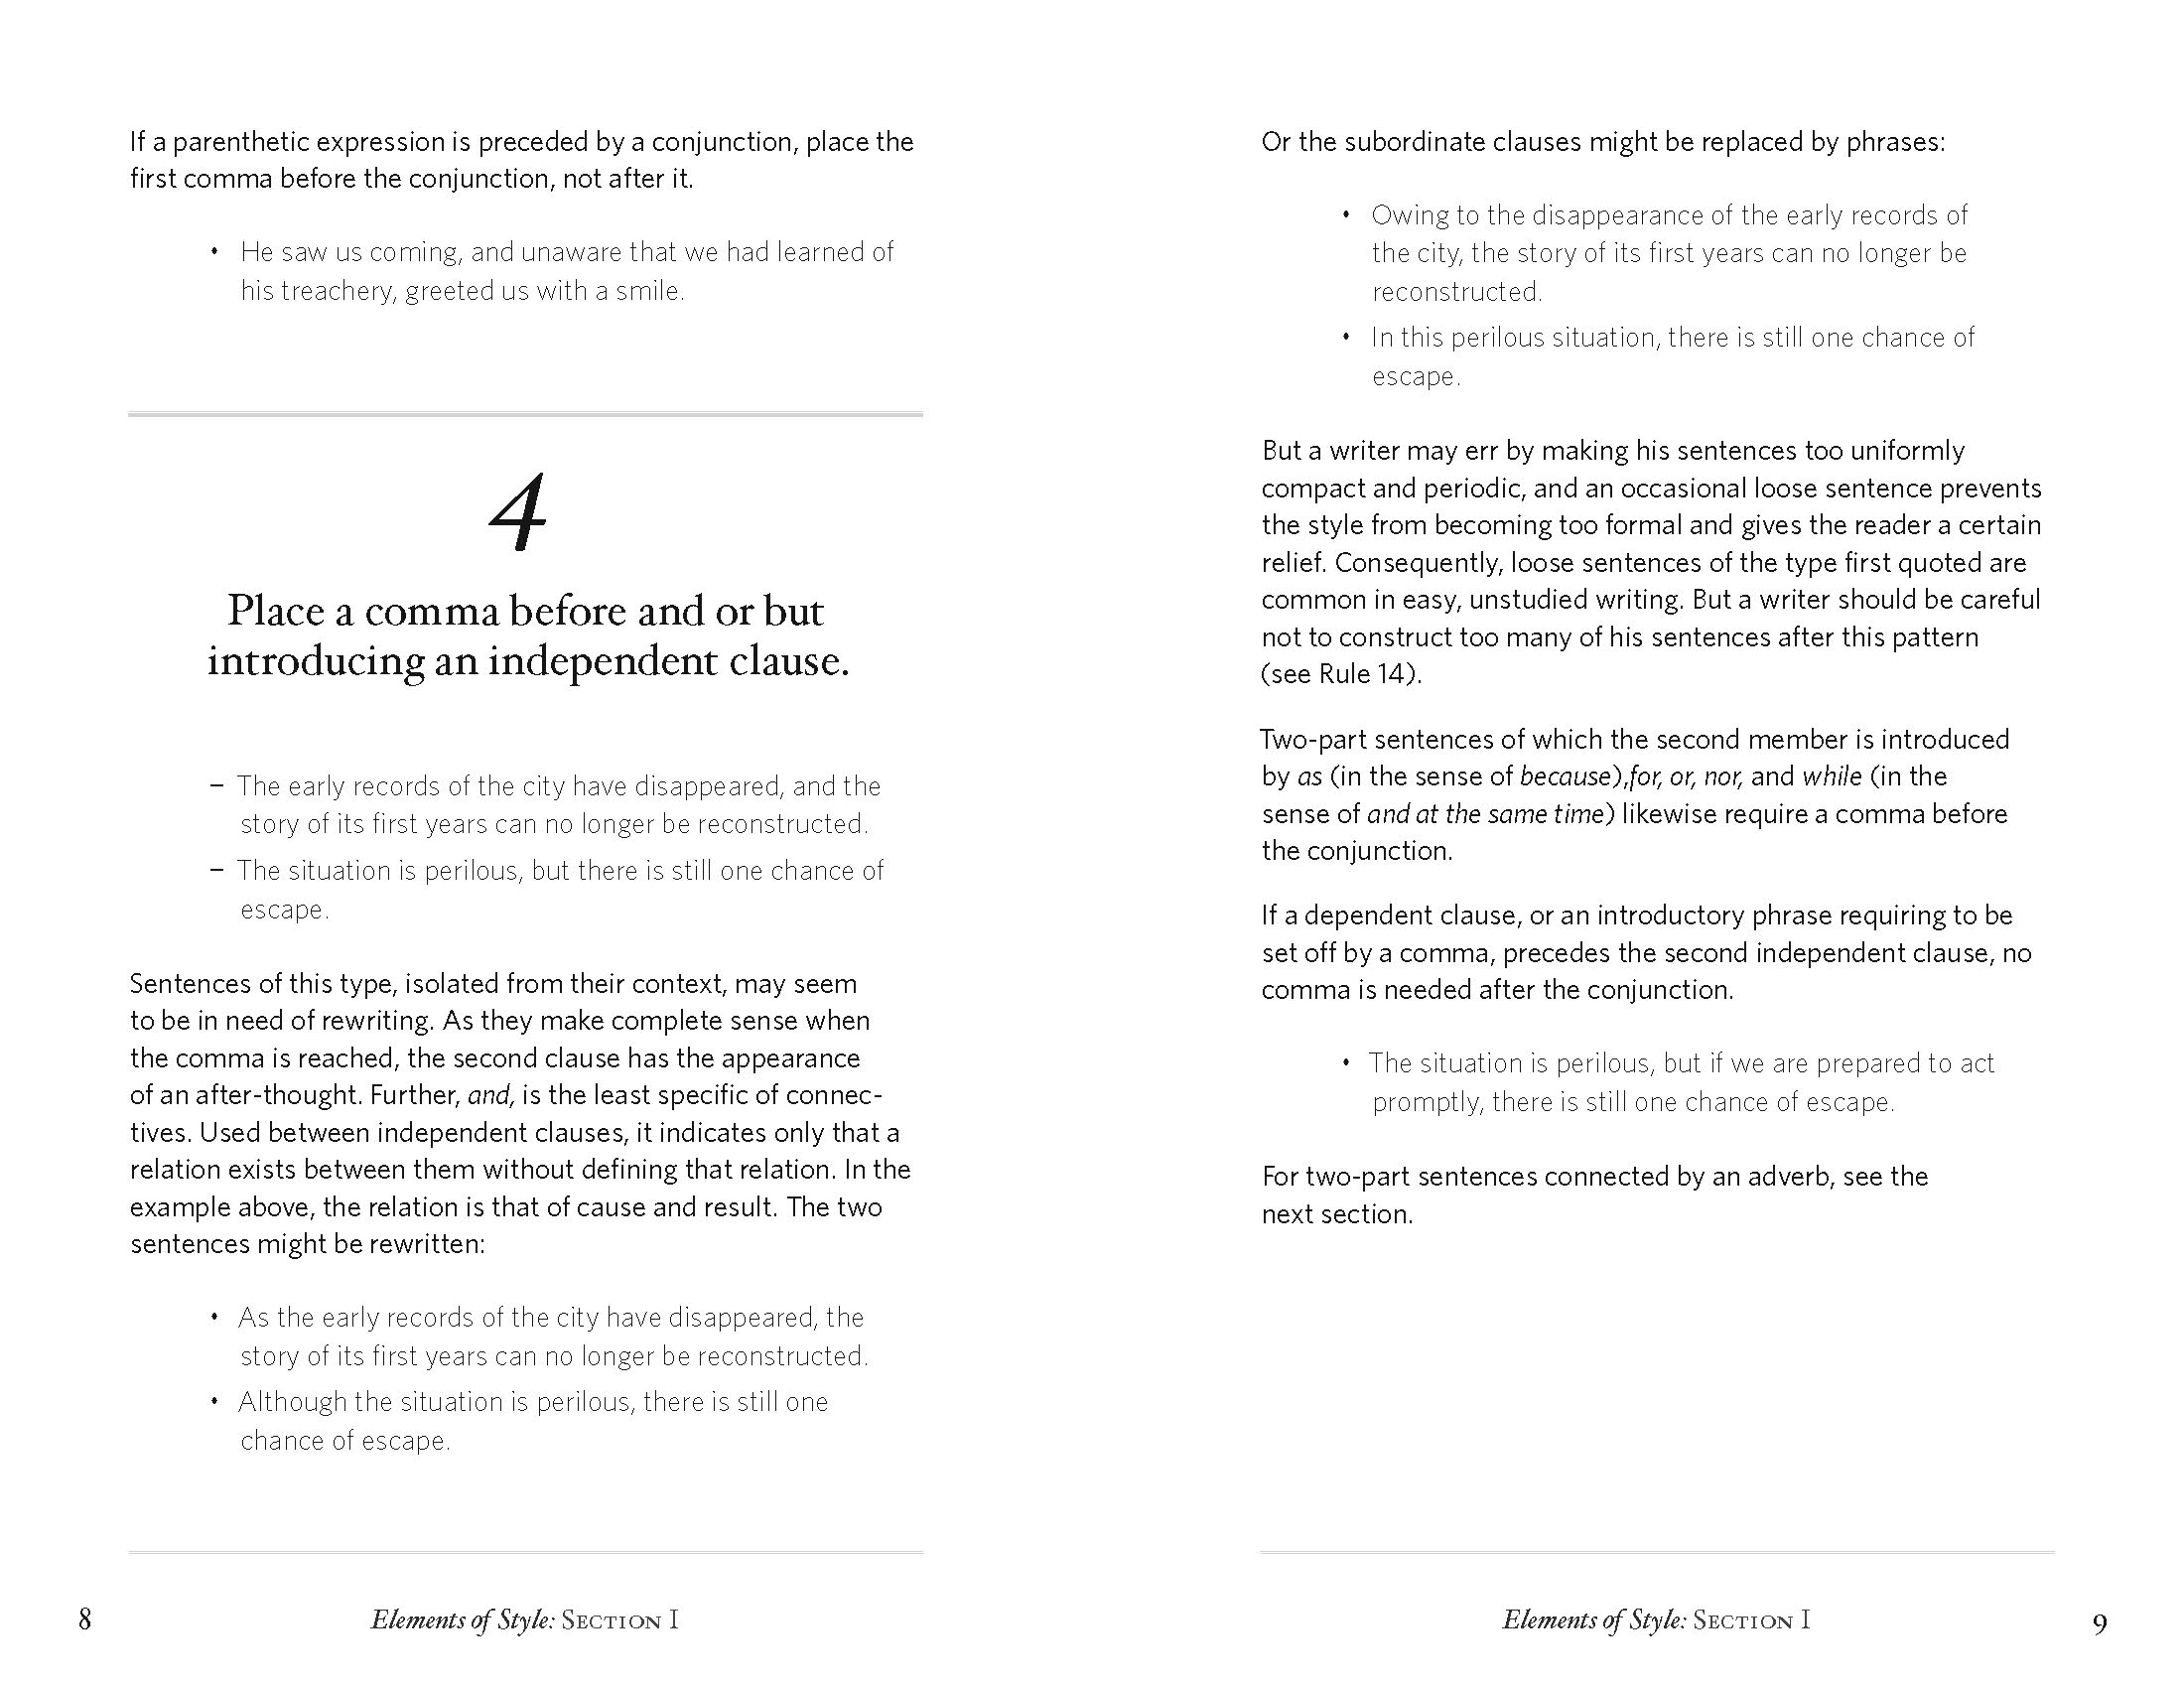 elements_of_style_section_1_v5_Page_06.jpg